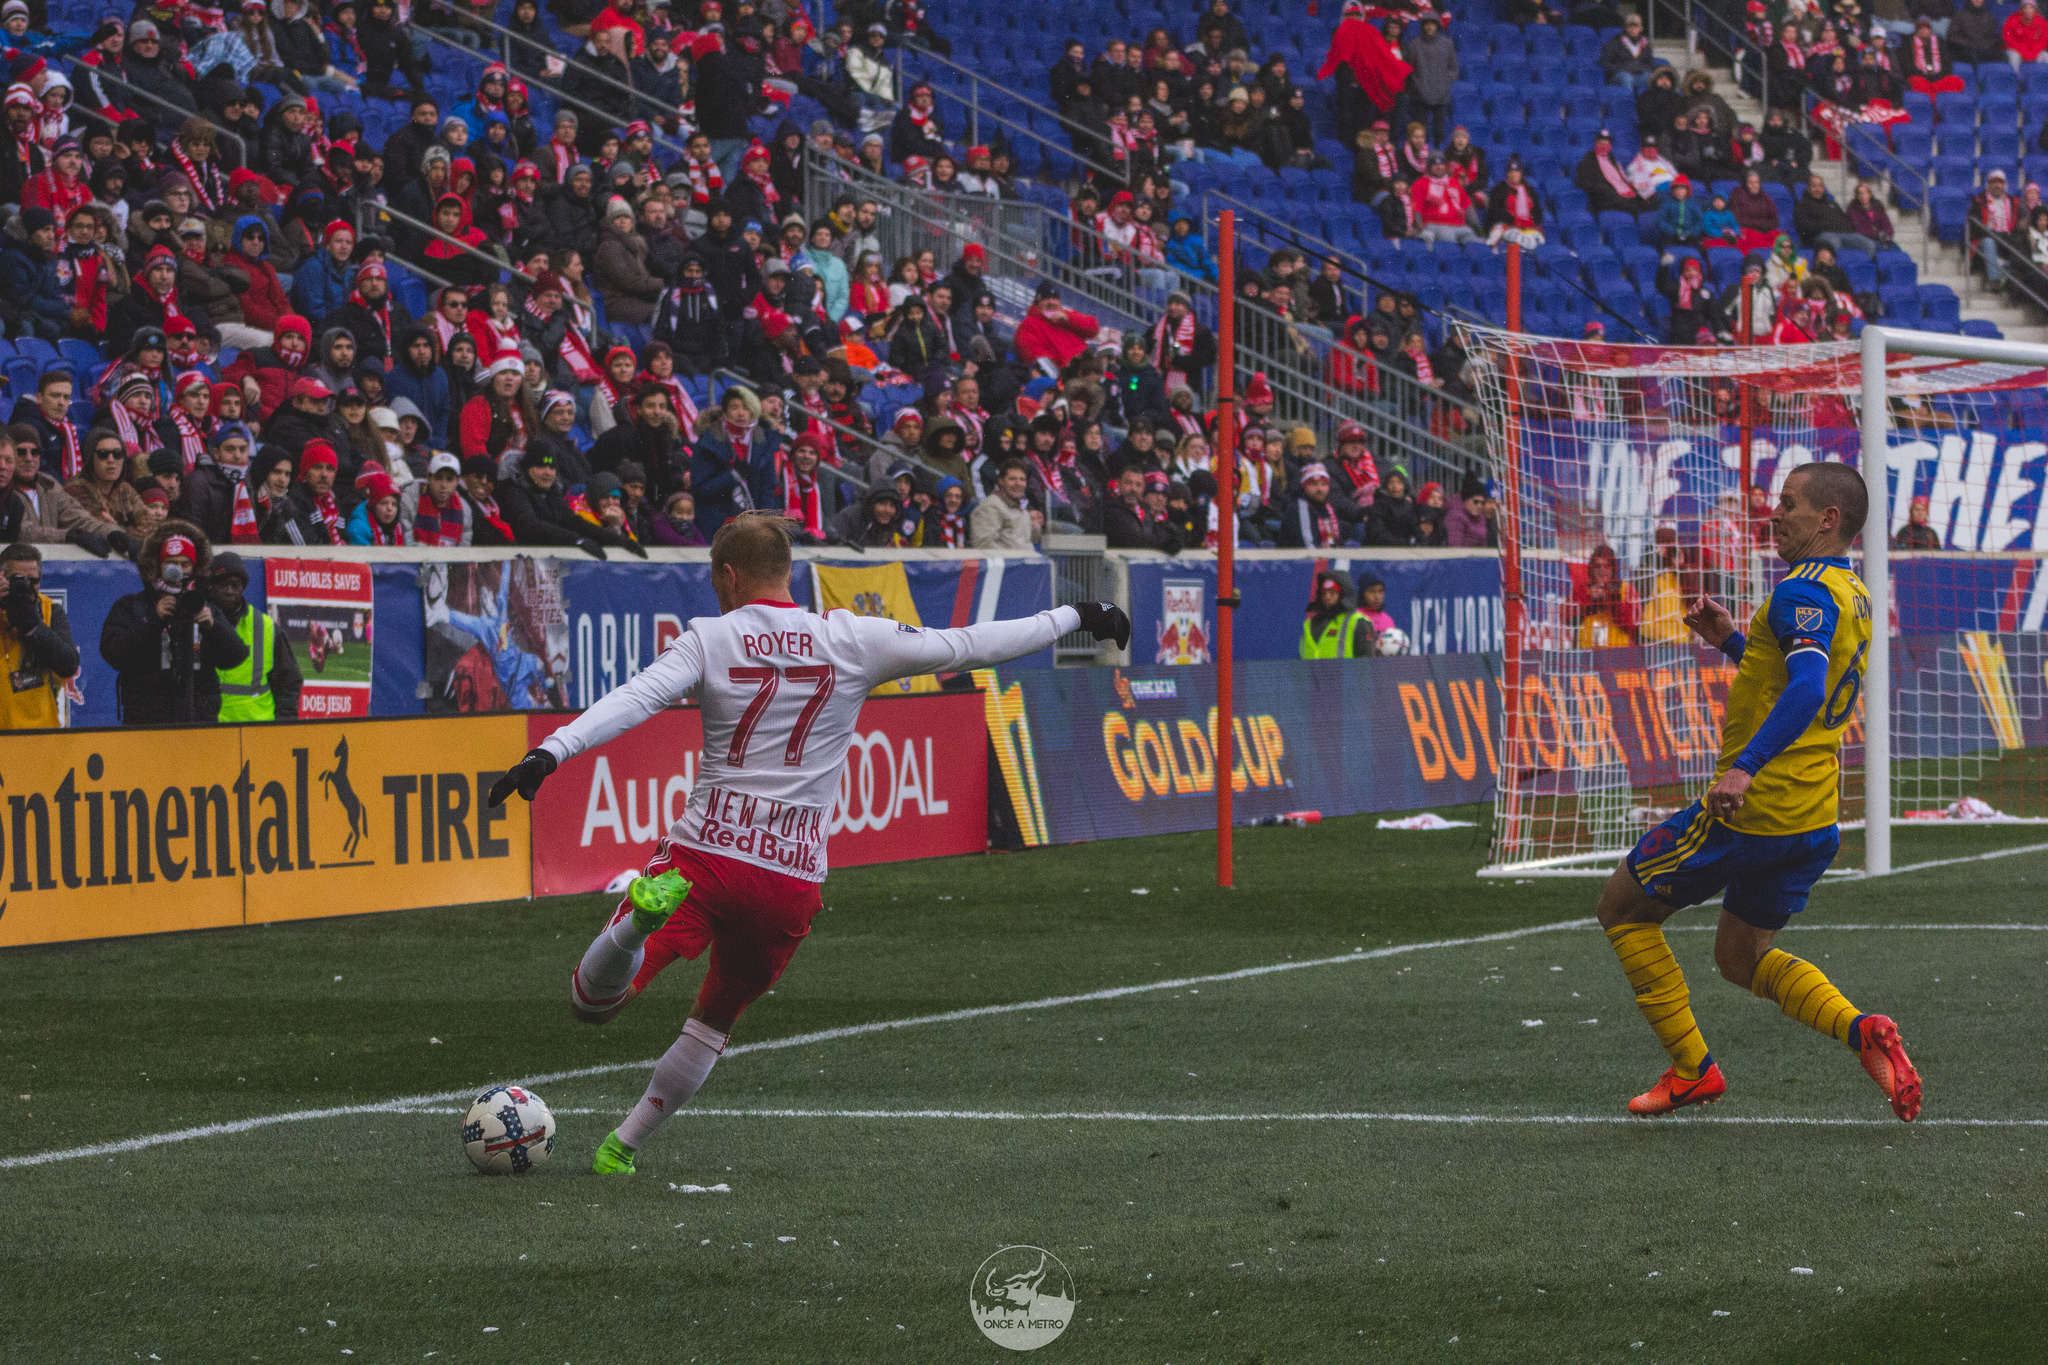 New York Red Bulls' Daniel Royer crosses the ball during a match against Colorado Rapids; March 11, 2017